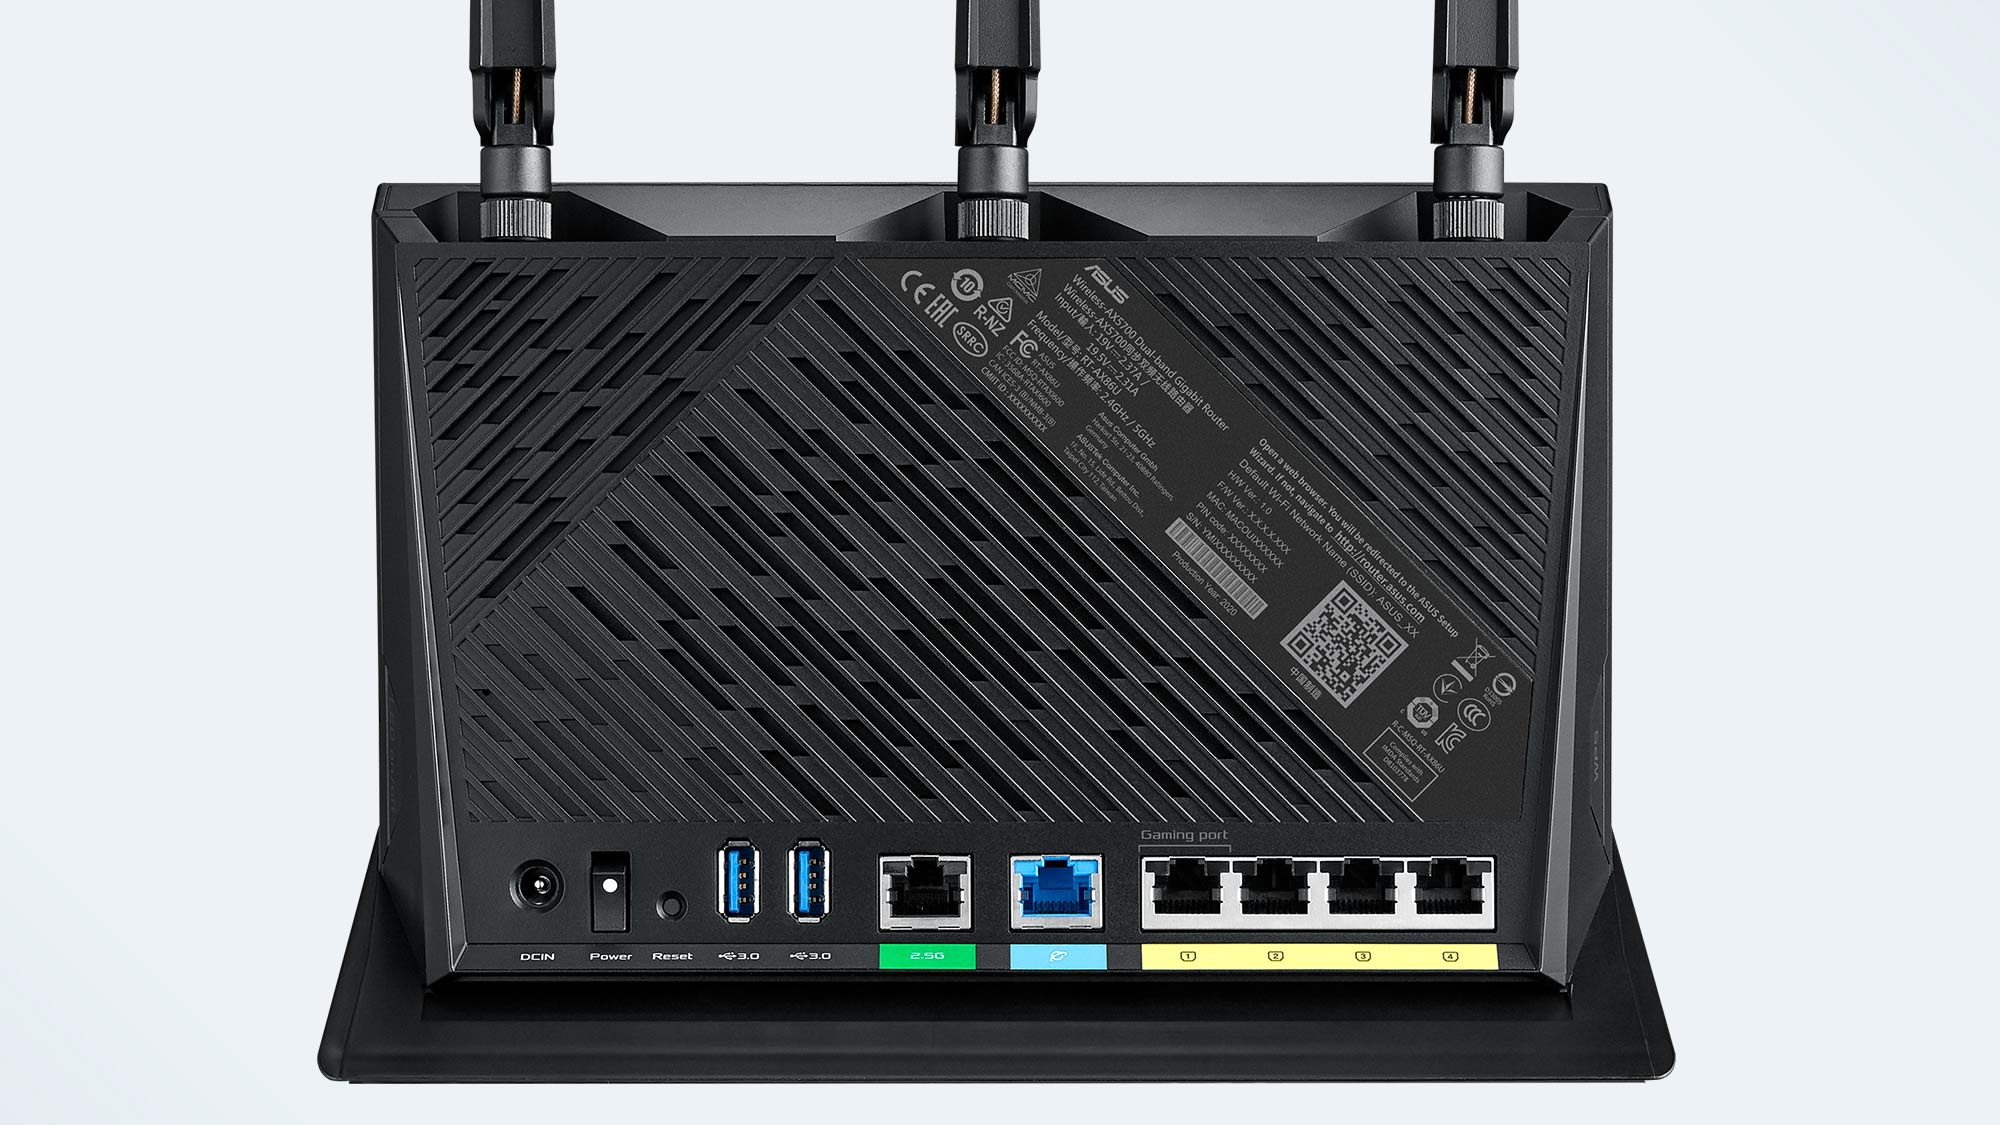 Asus RT-AX86U router review